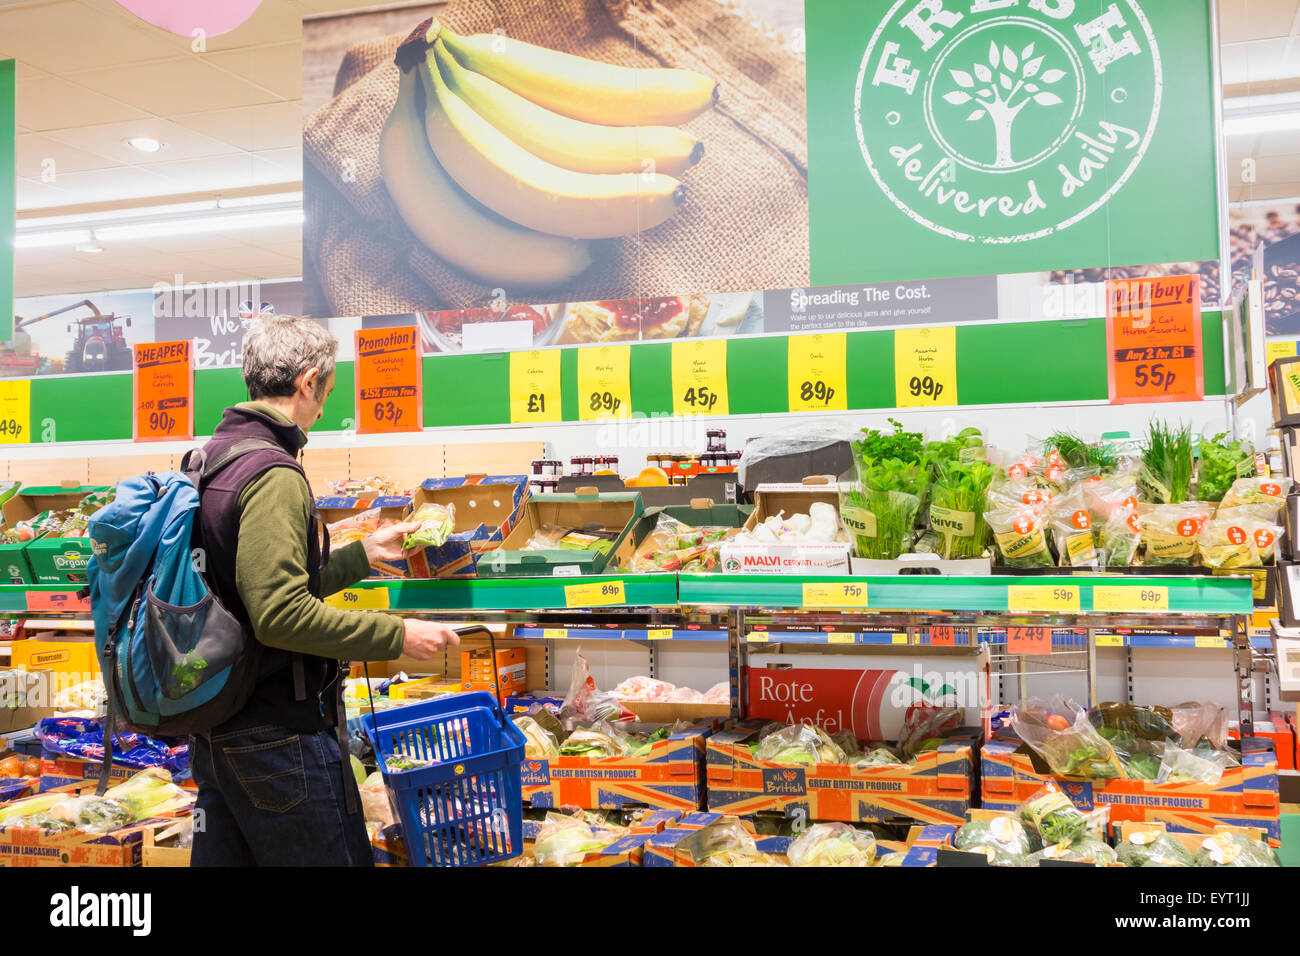 Man buying fruit and veg in Lidl supermarket. UK - Stock Image